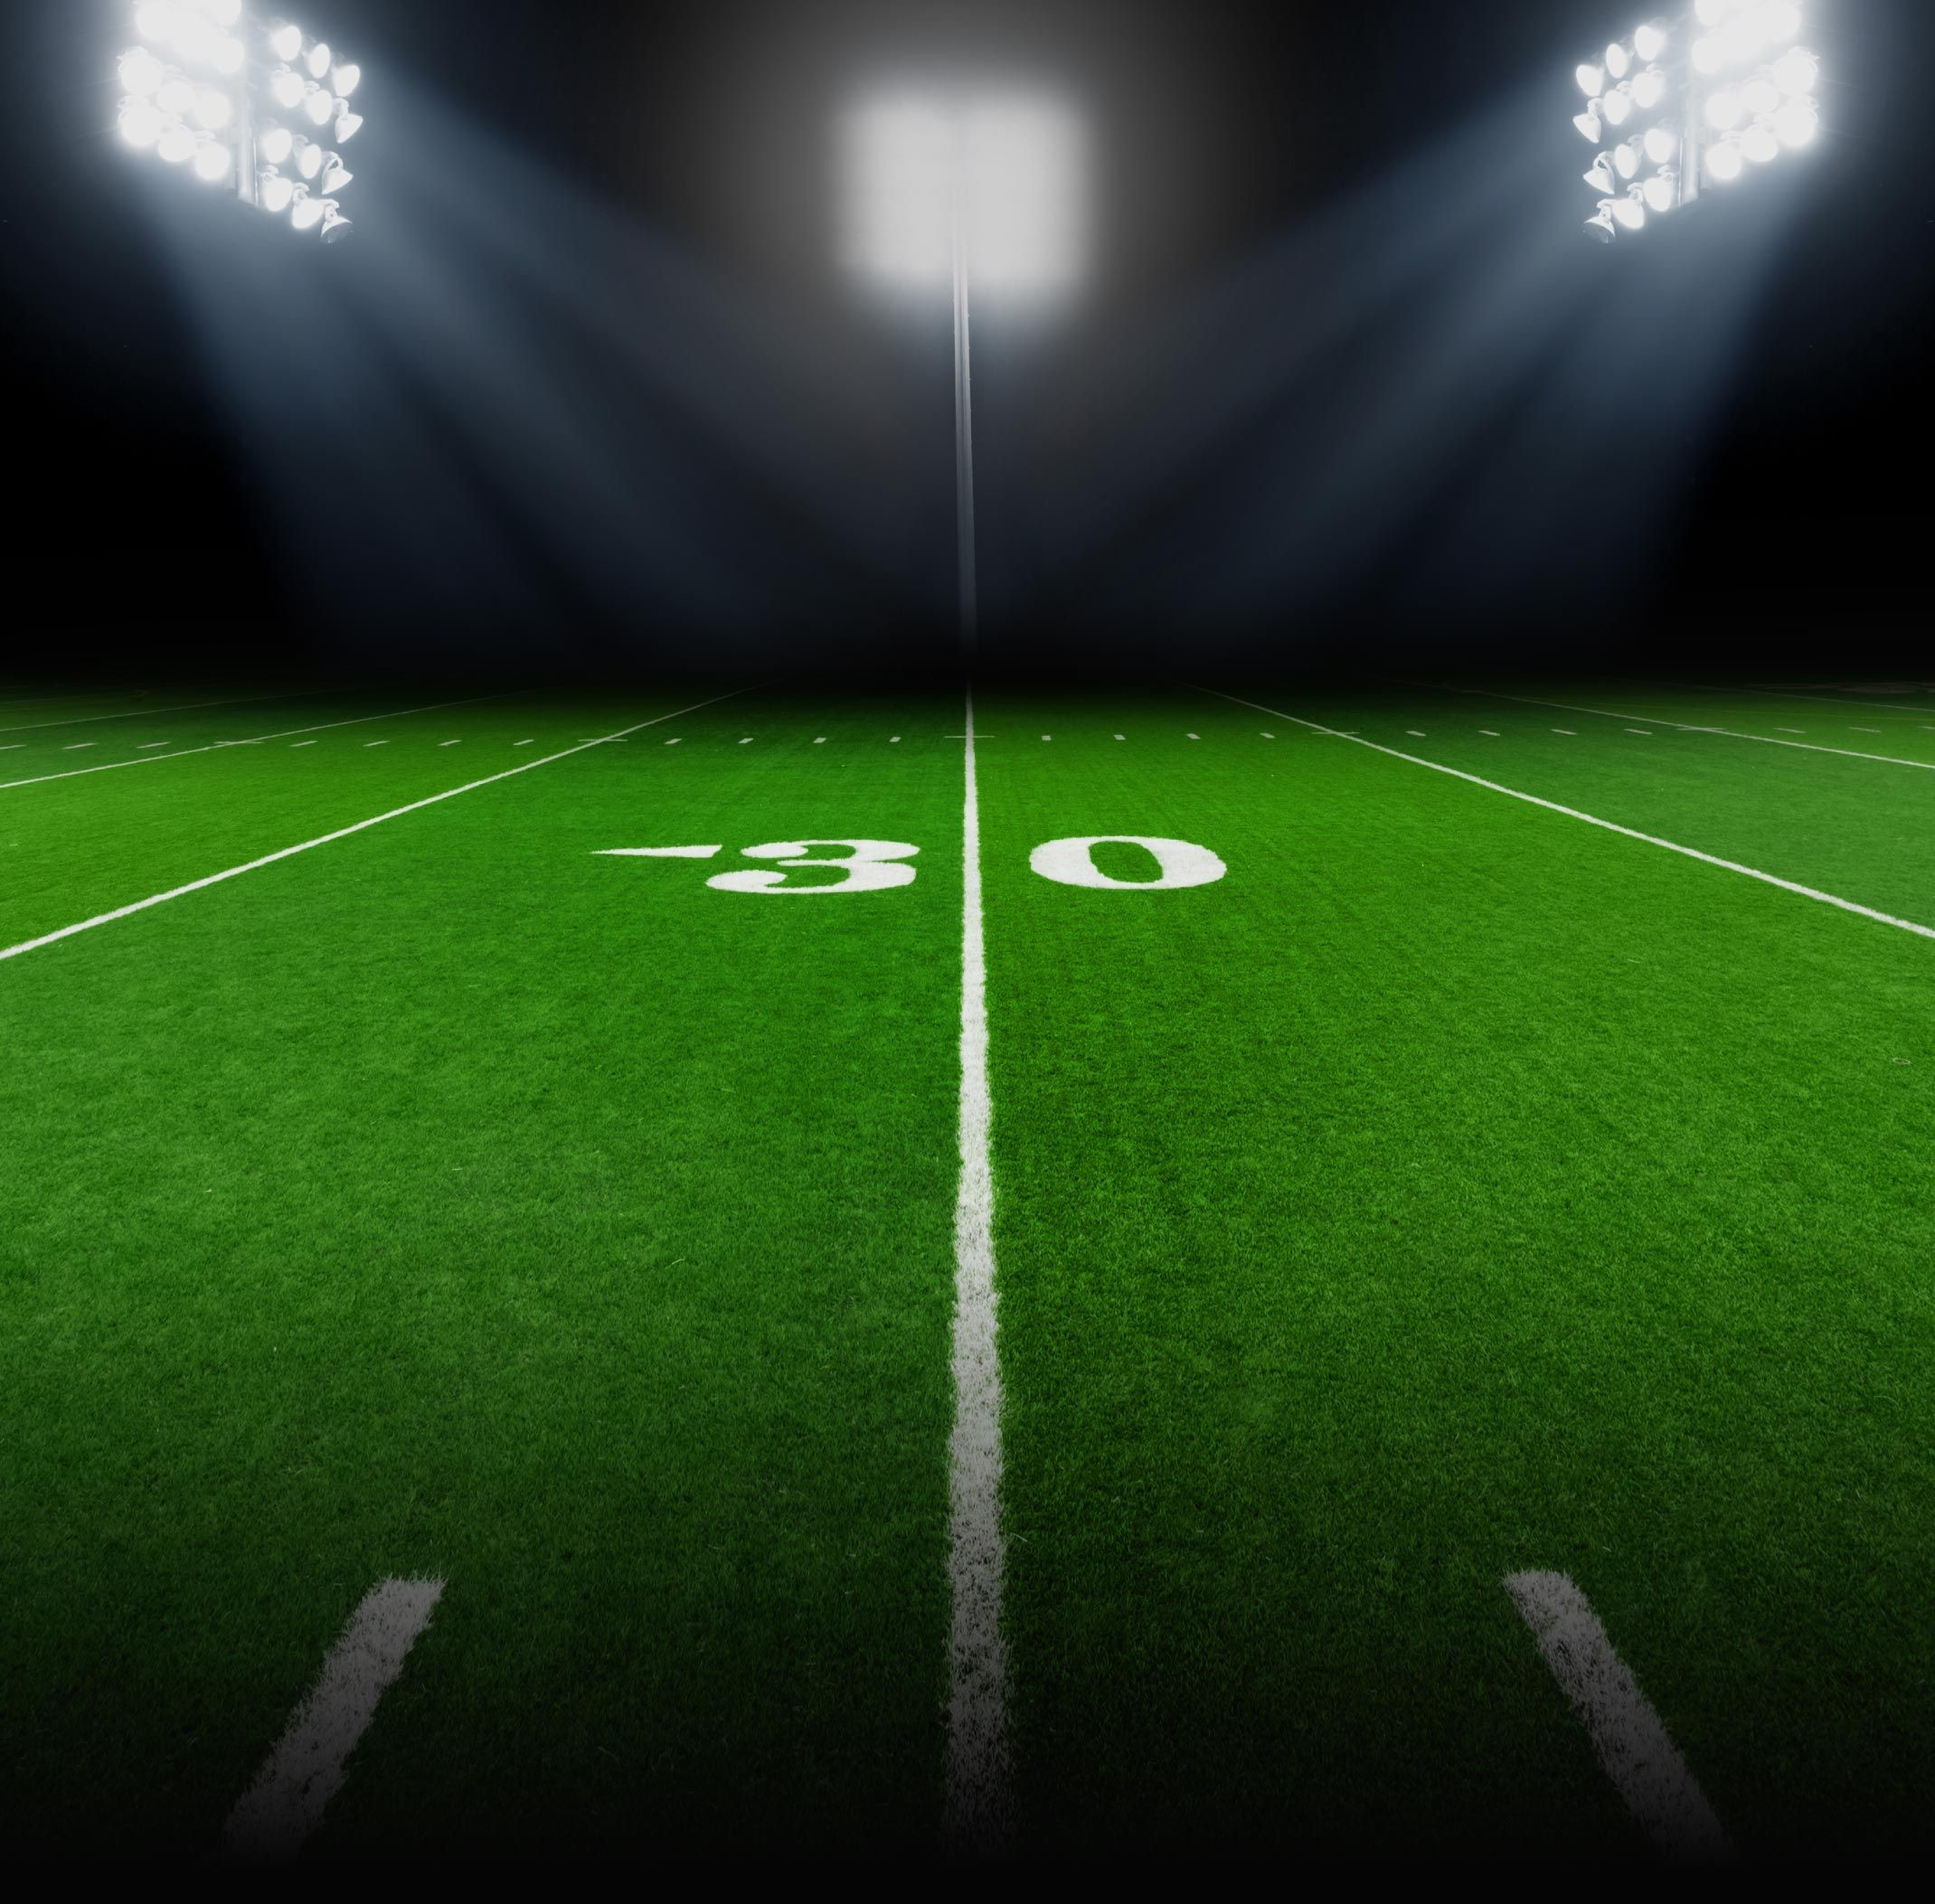 2140x2106 Background - Football Field with Stadium Lights